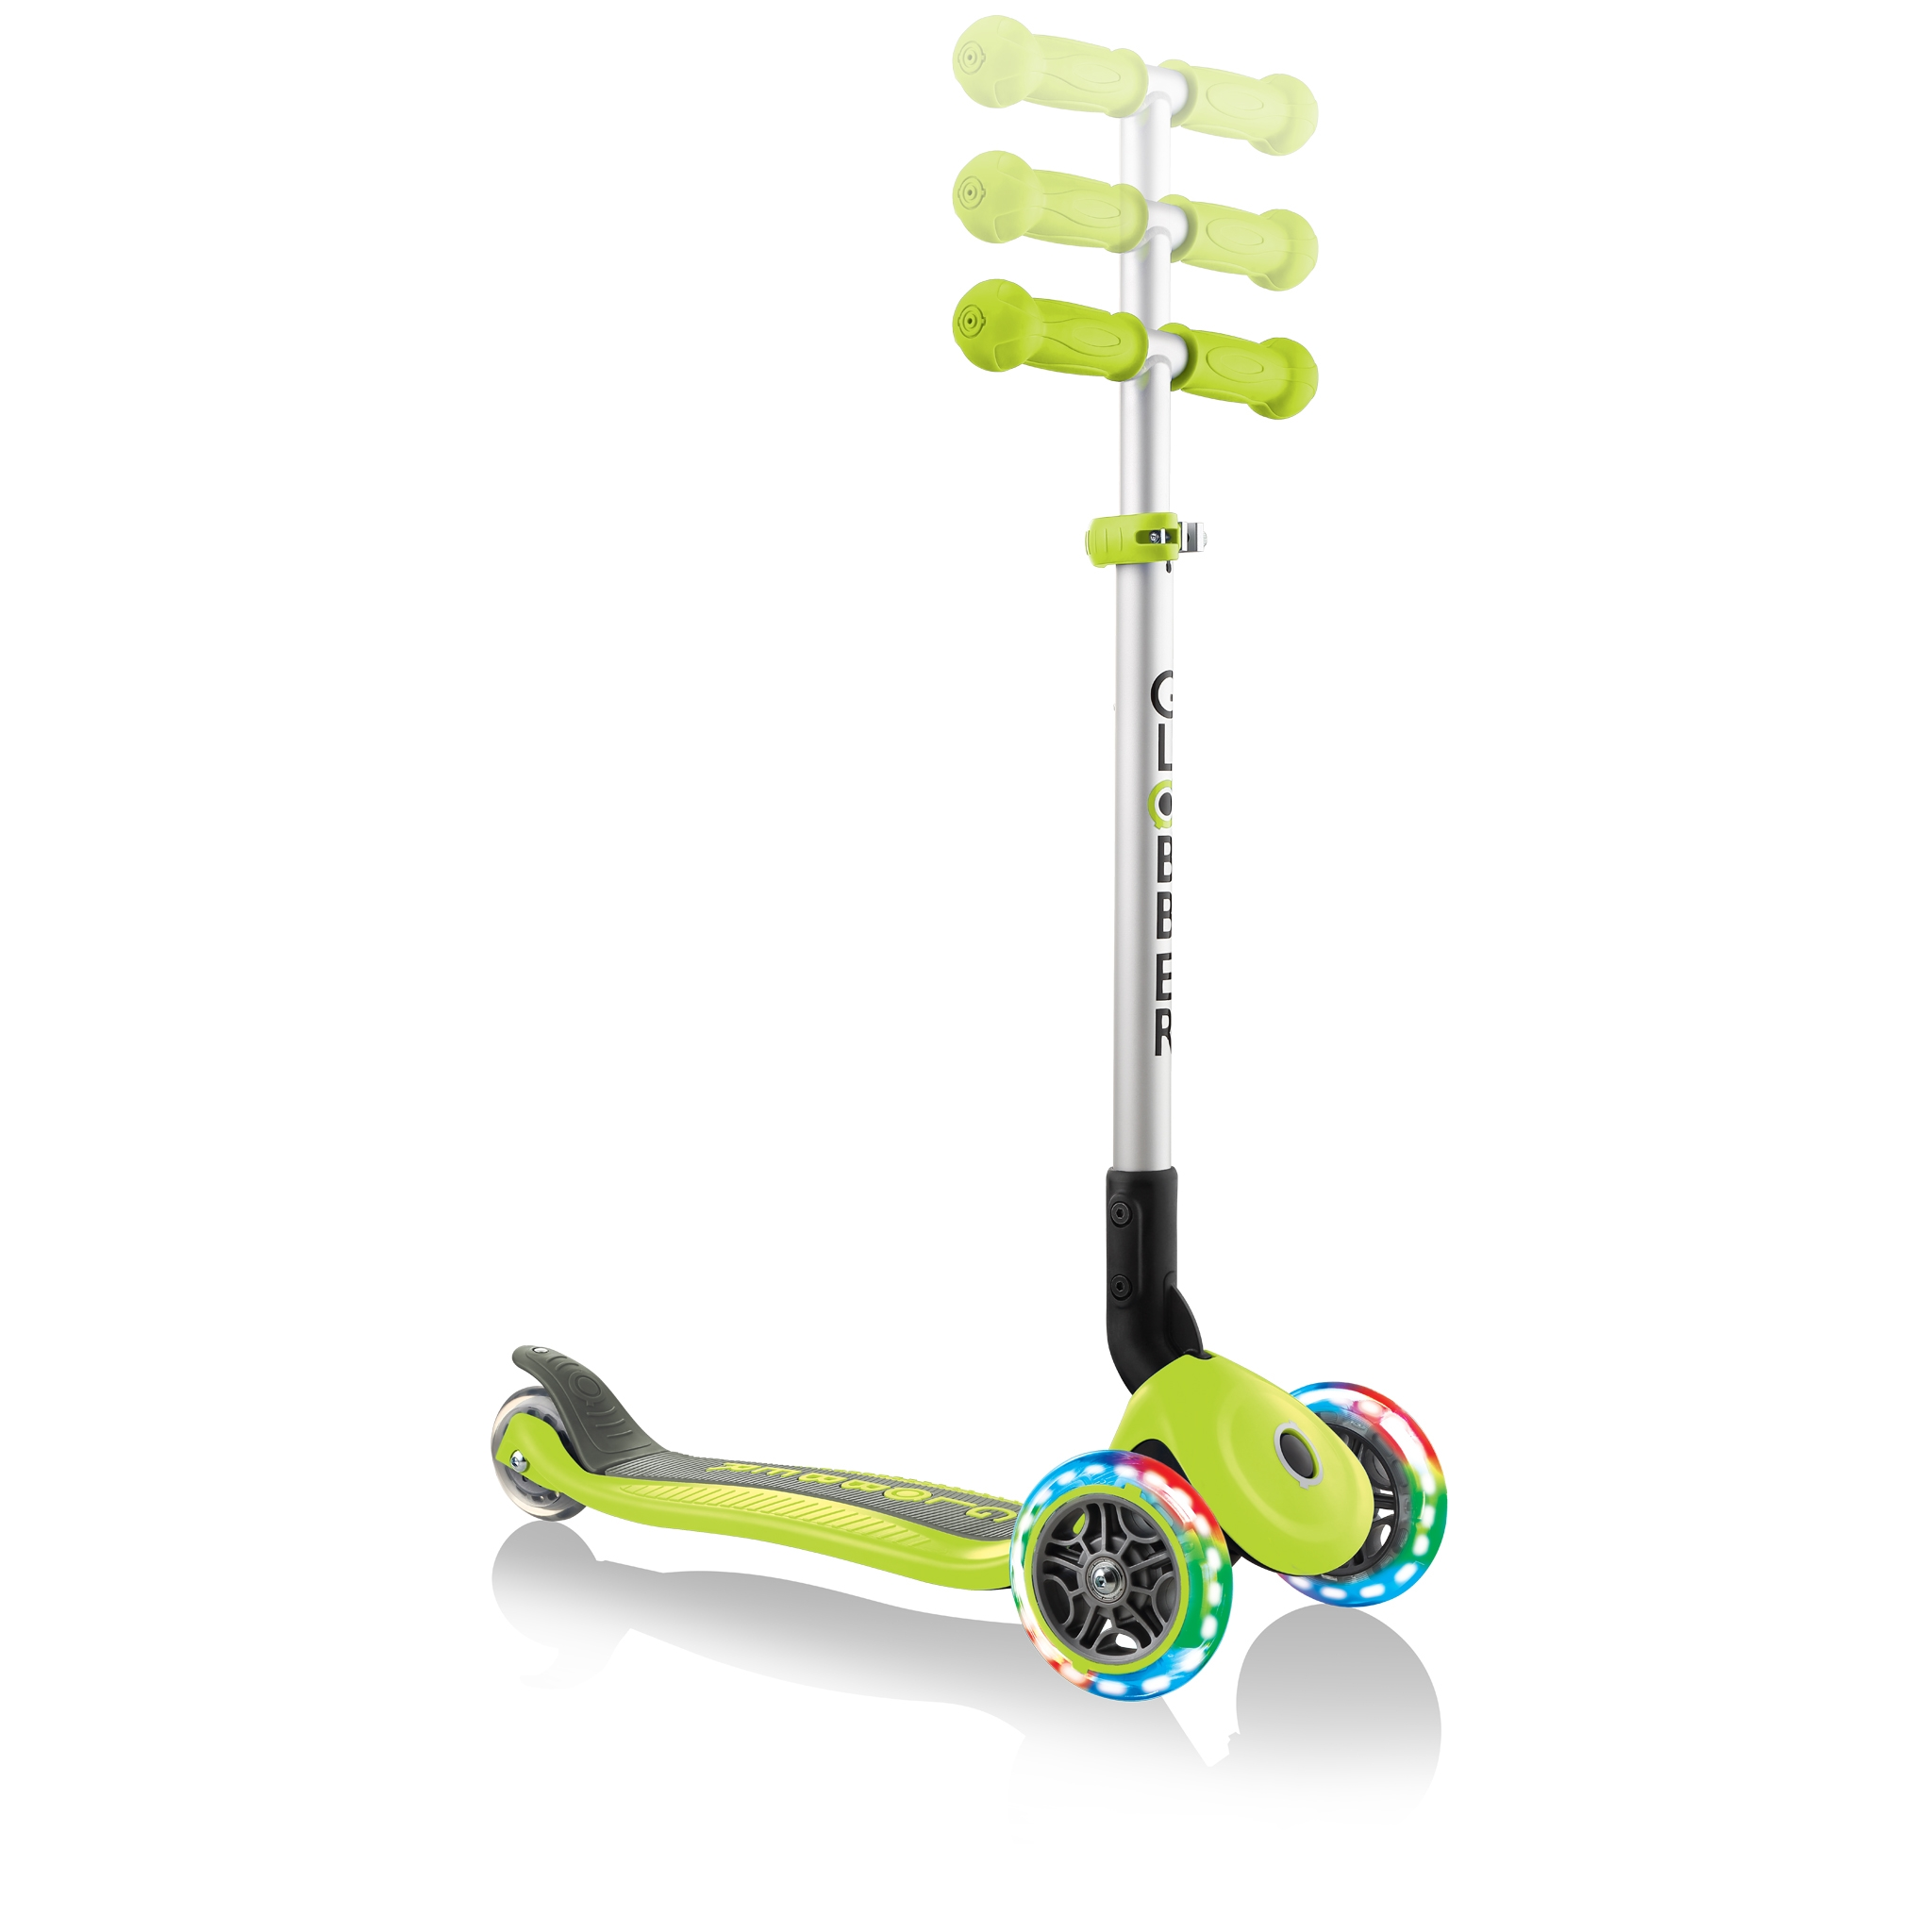 PRIMO-FOLDABLE-LIGHTS-adjustable-scooter-for-kids-lime-green